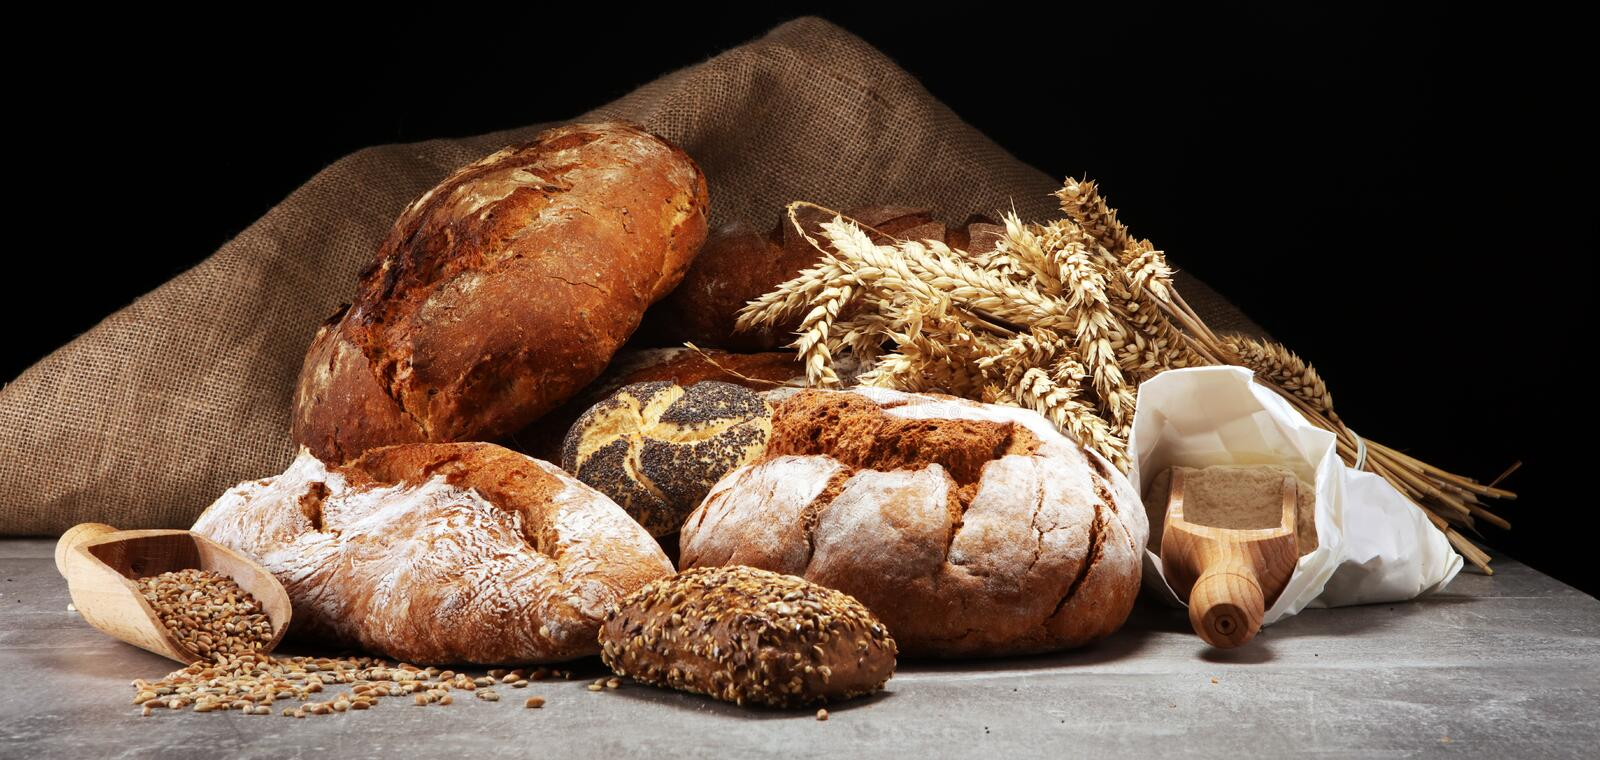 Different kinds of bread and bread rolls on board from above. Kitchen or bakery stock image